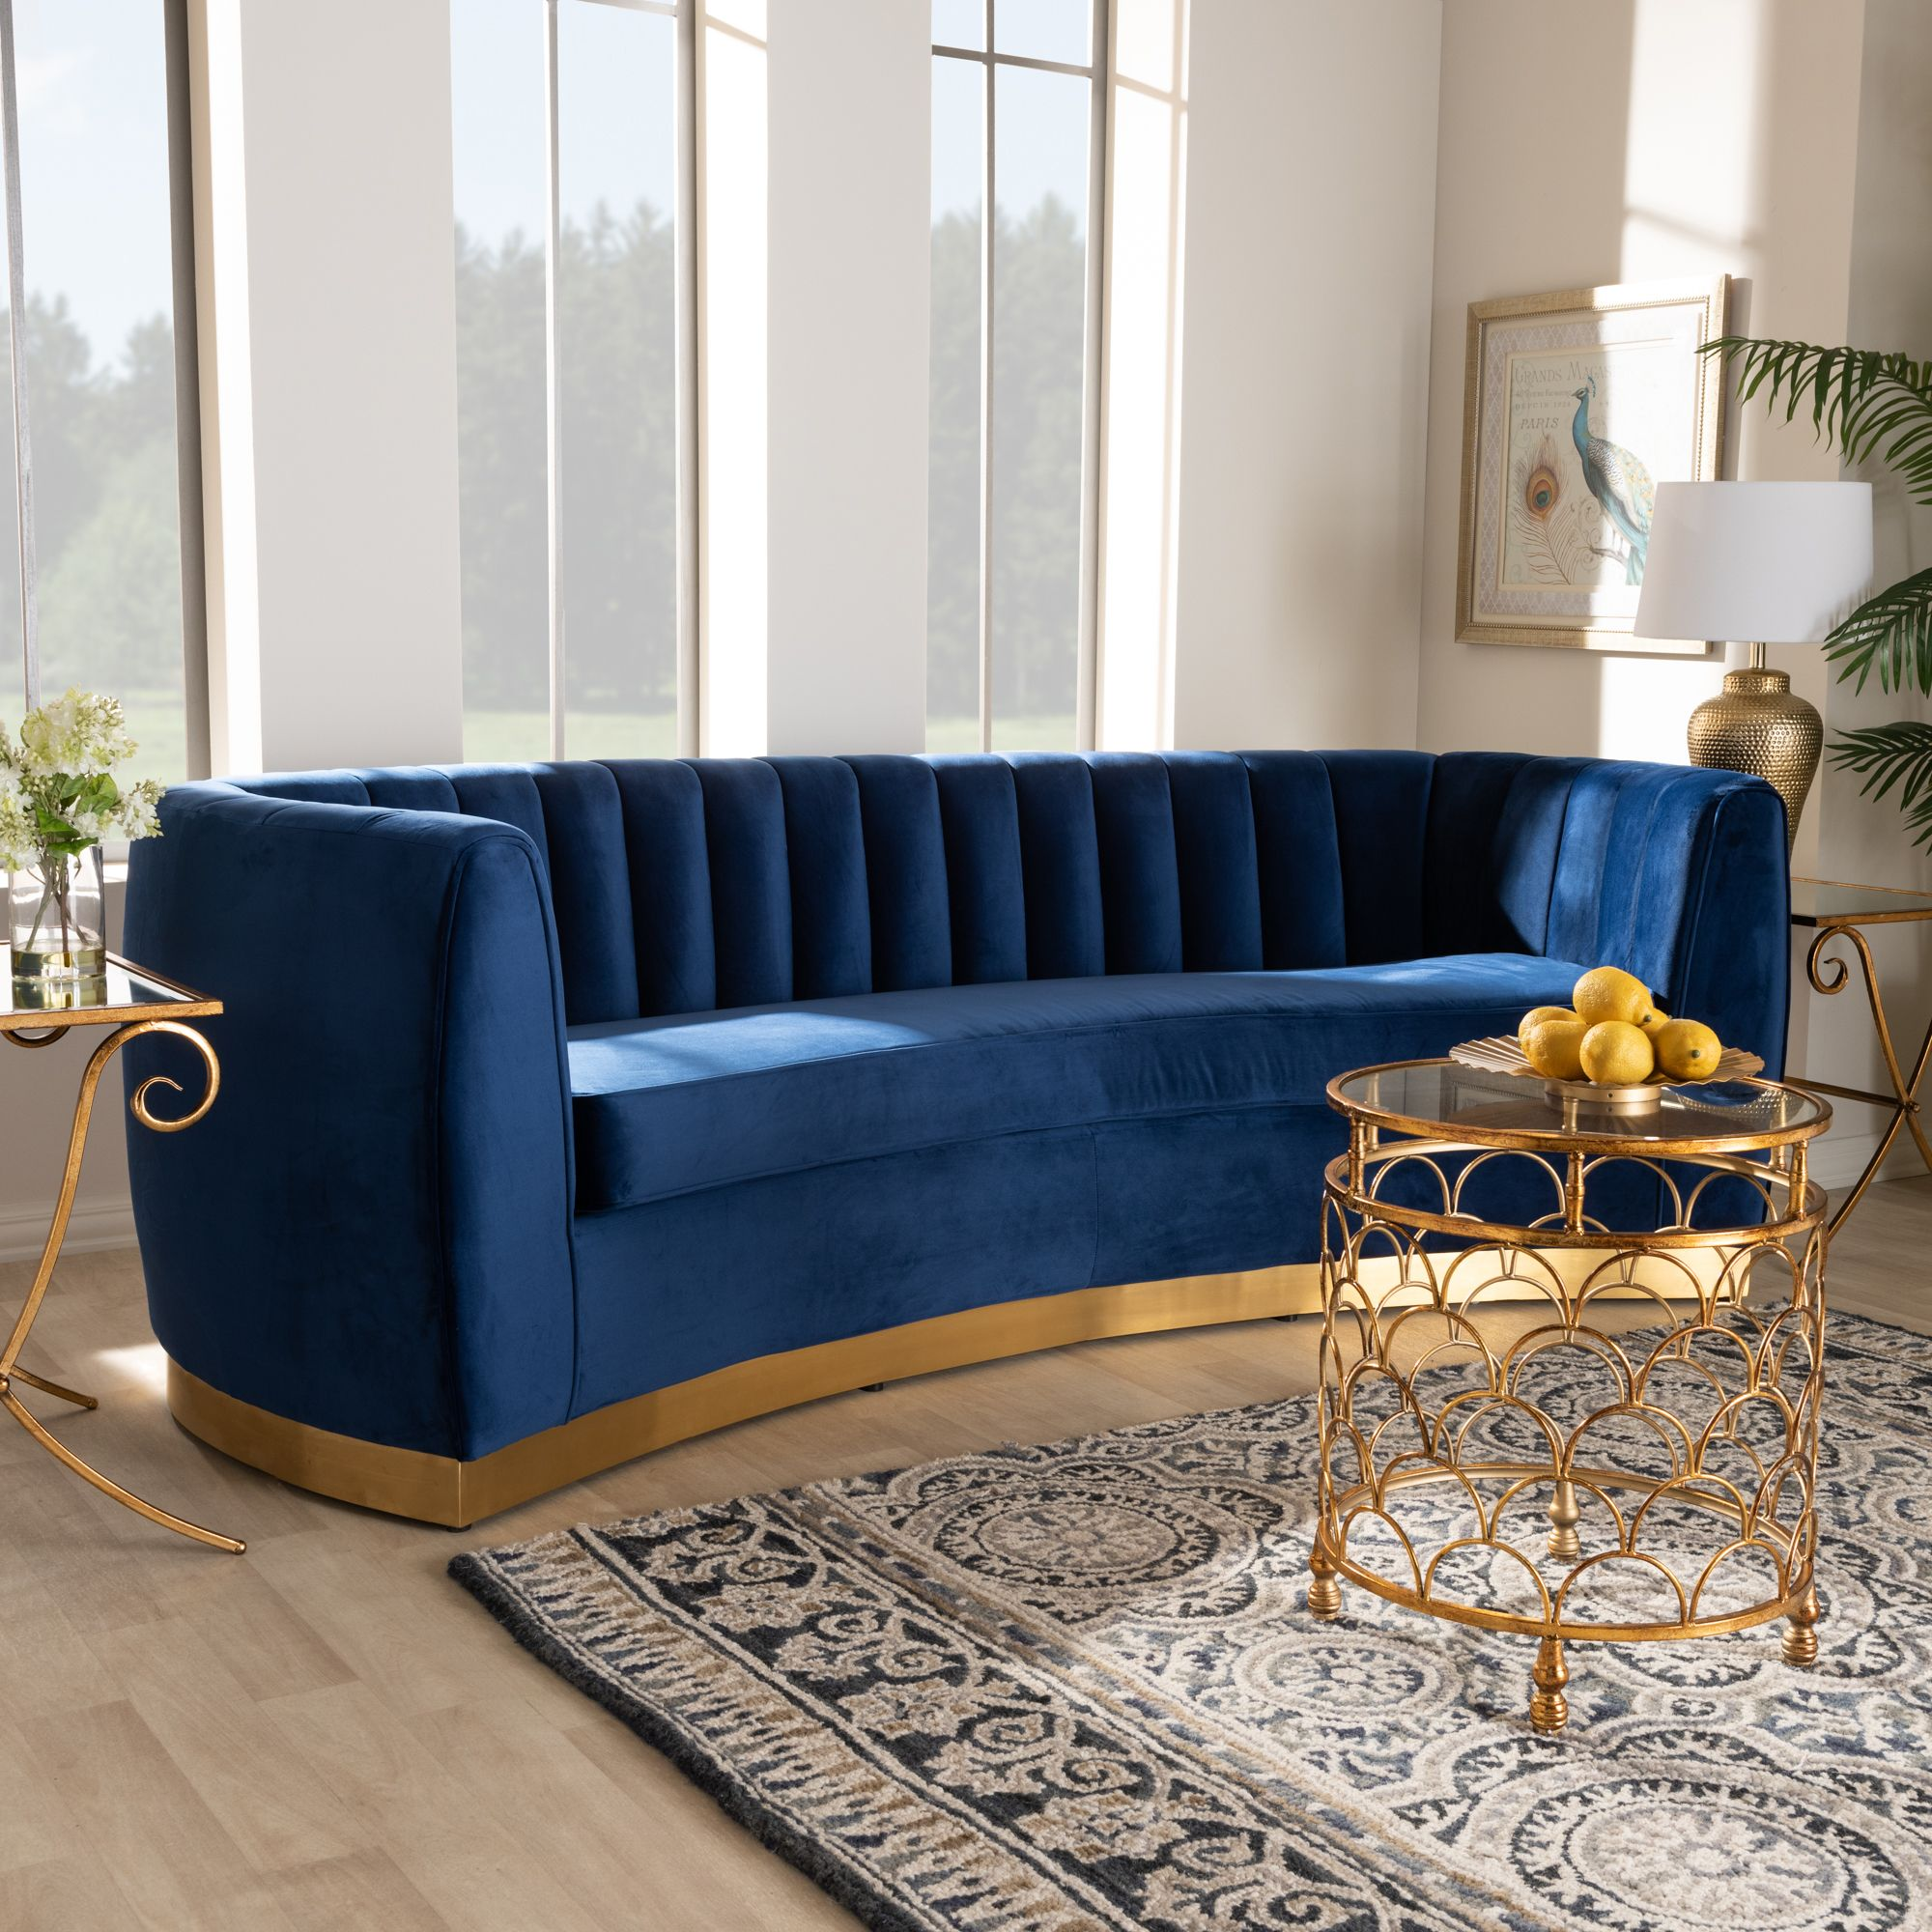 Baxton Studio Milena Glam Royal Blue Velvet Fabric Upholstered